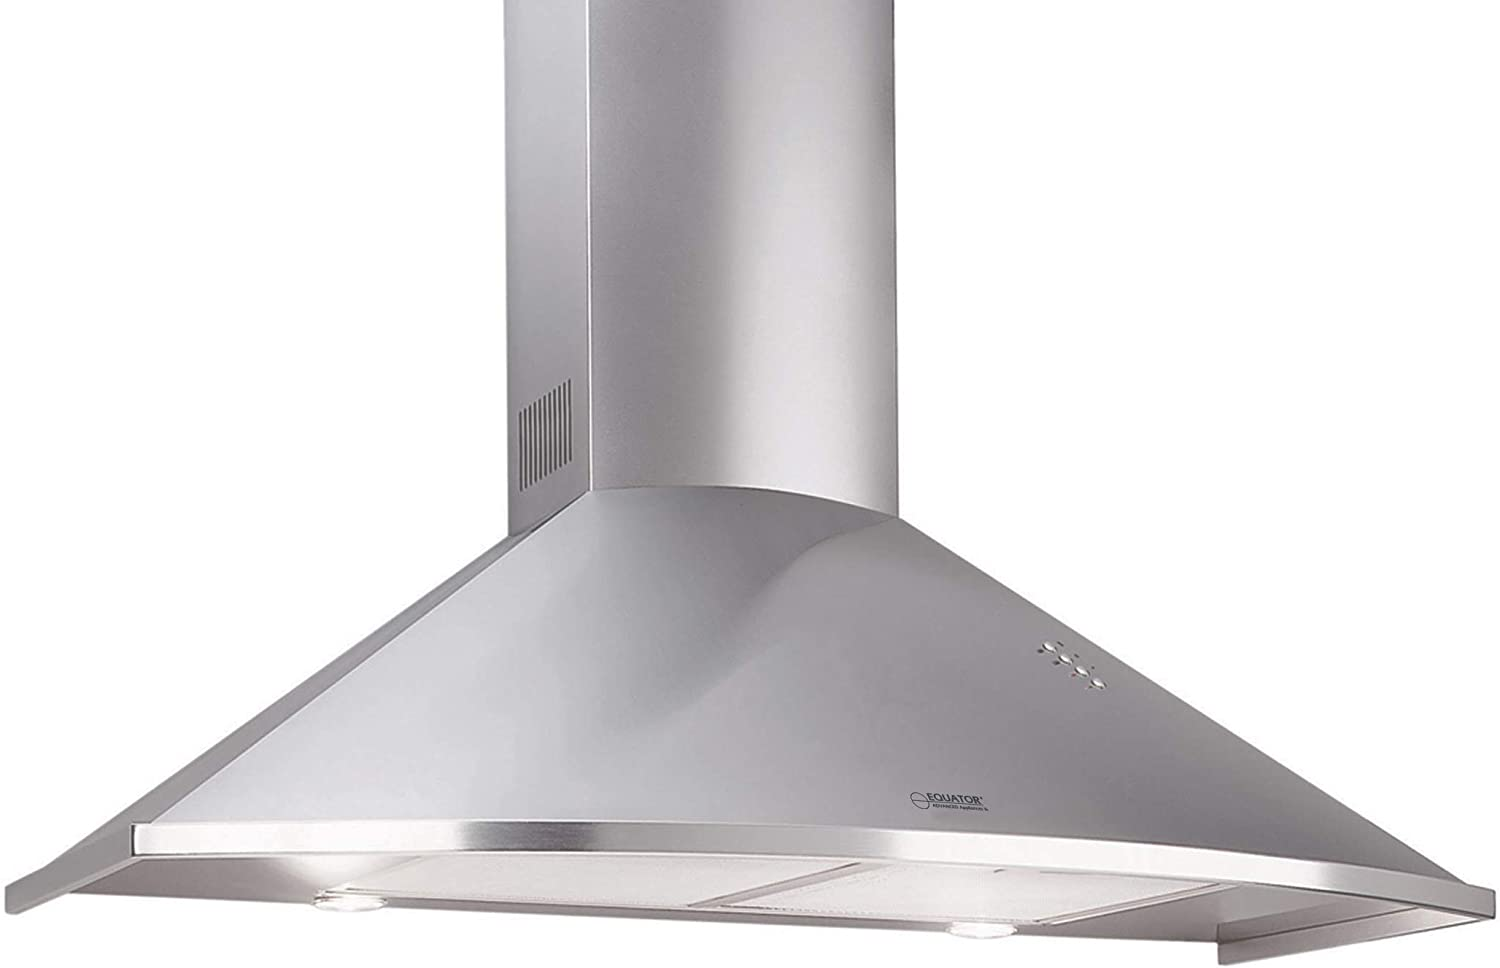 "Equator 36"" Made in Europe Wall Mount Range hood, Stainless, LED lights, 3 Speed, Timer with Auto Speed Reduction"